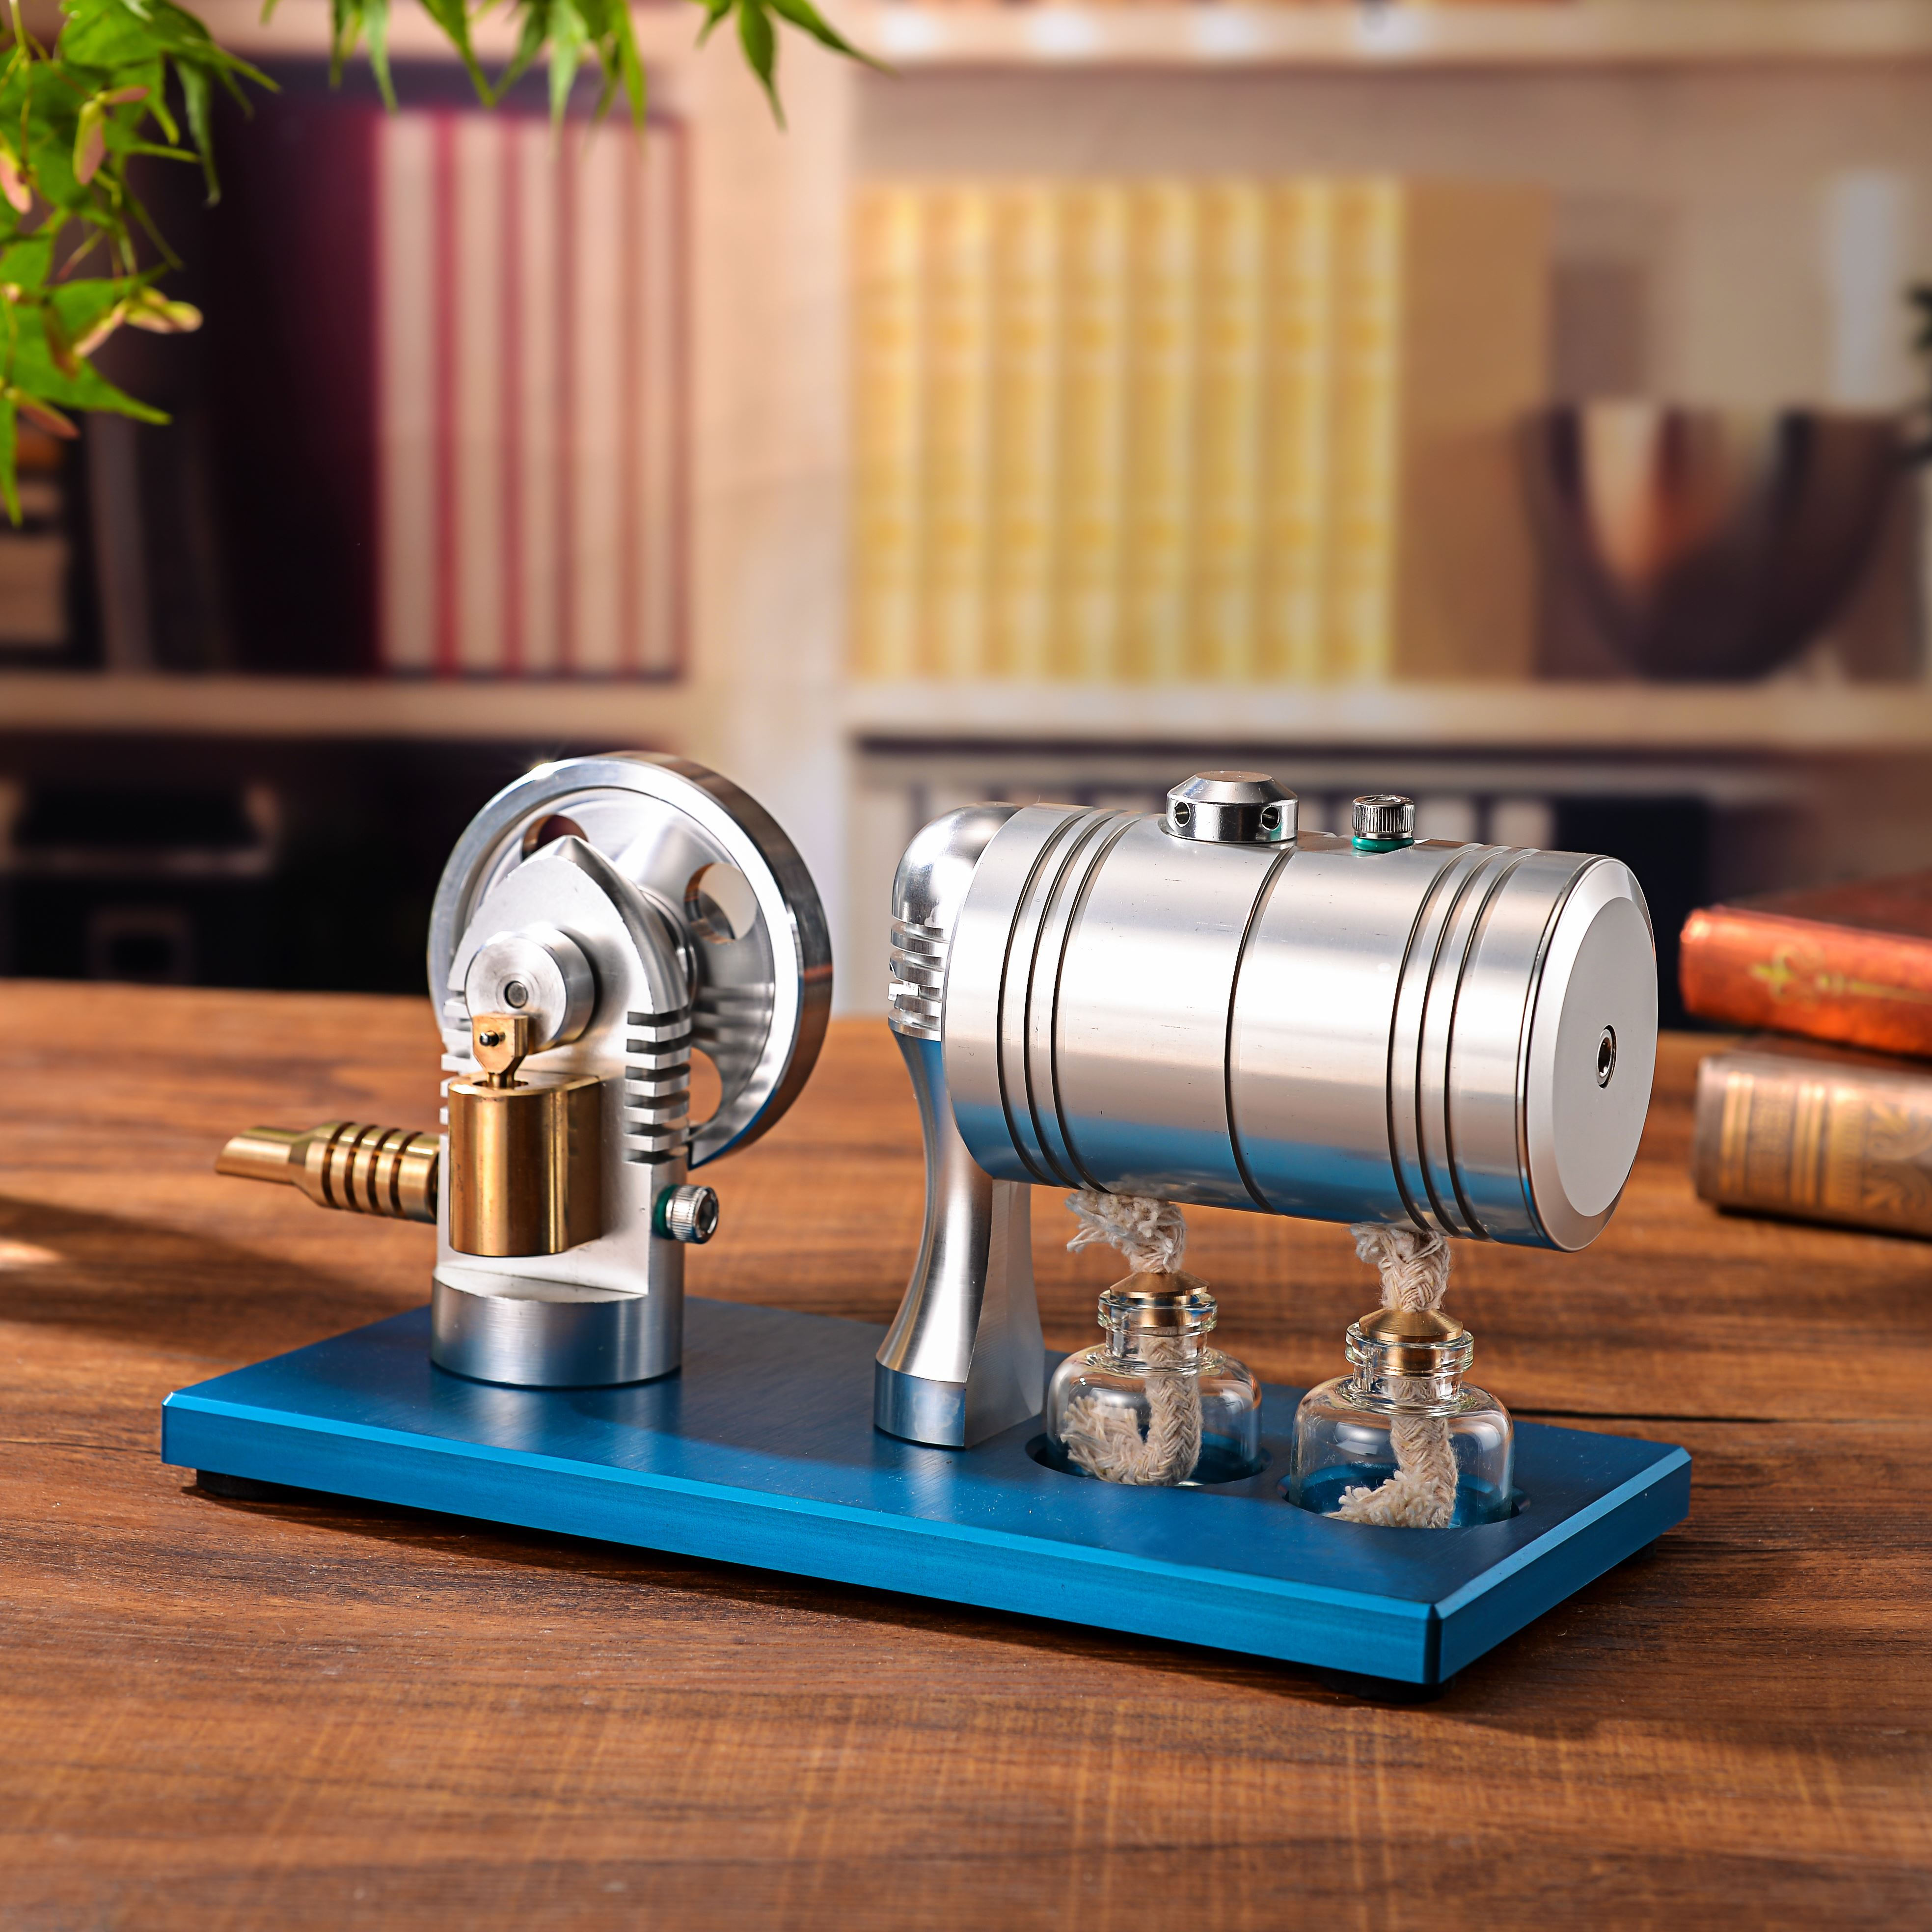 Metal Bootable Steam Engine Model Retro Stirling Engine Model with Heating Boiler Alcohol Burner Early Education Toys For Kids